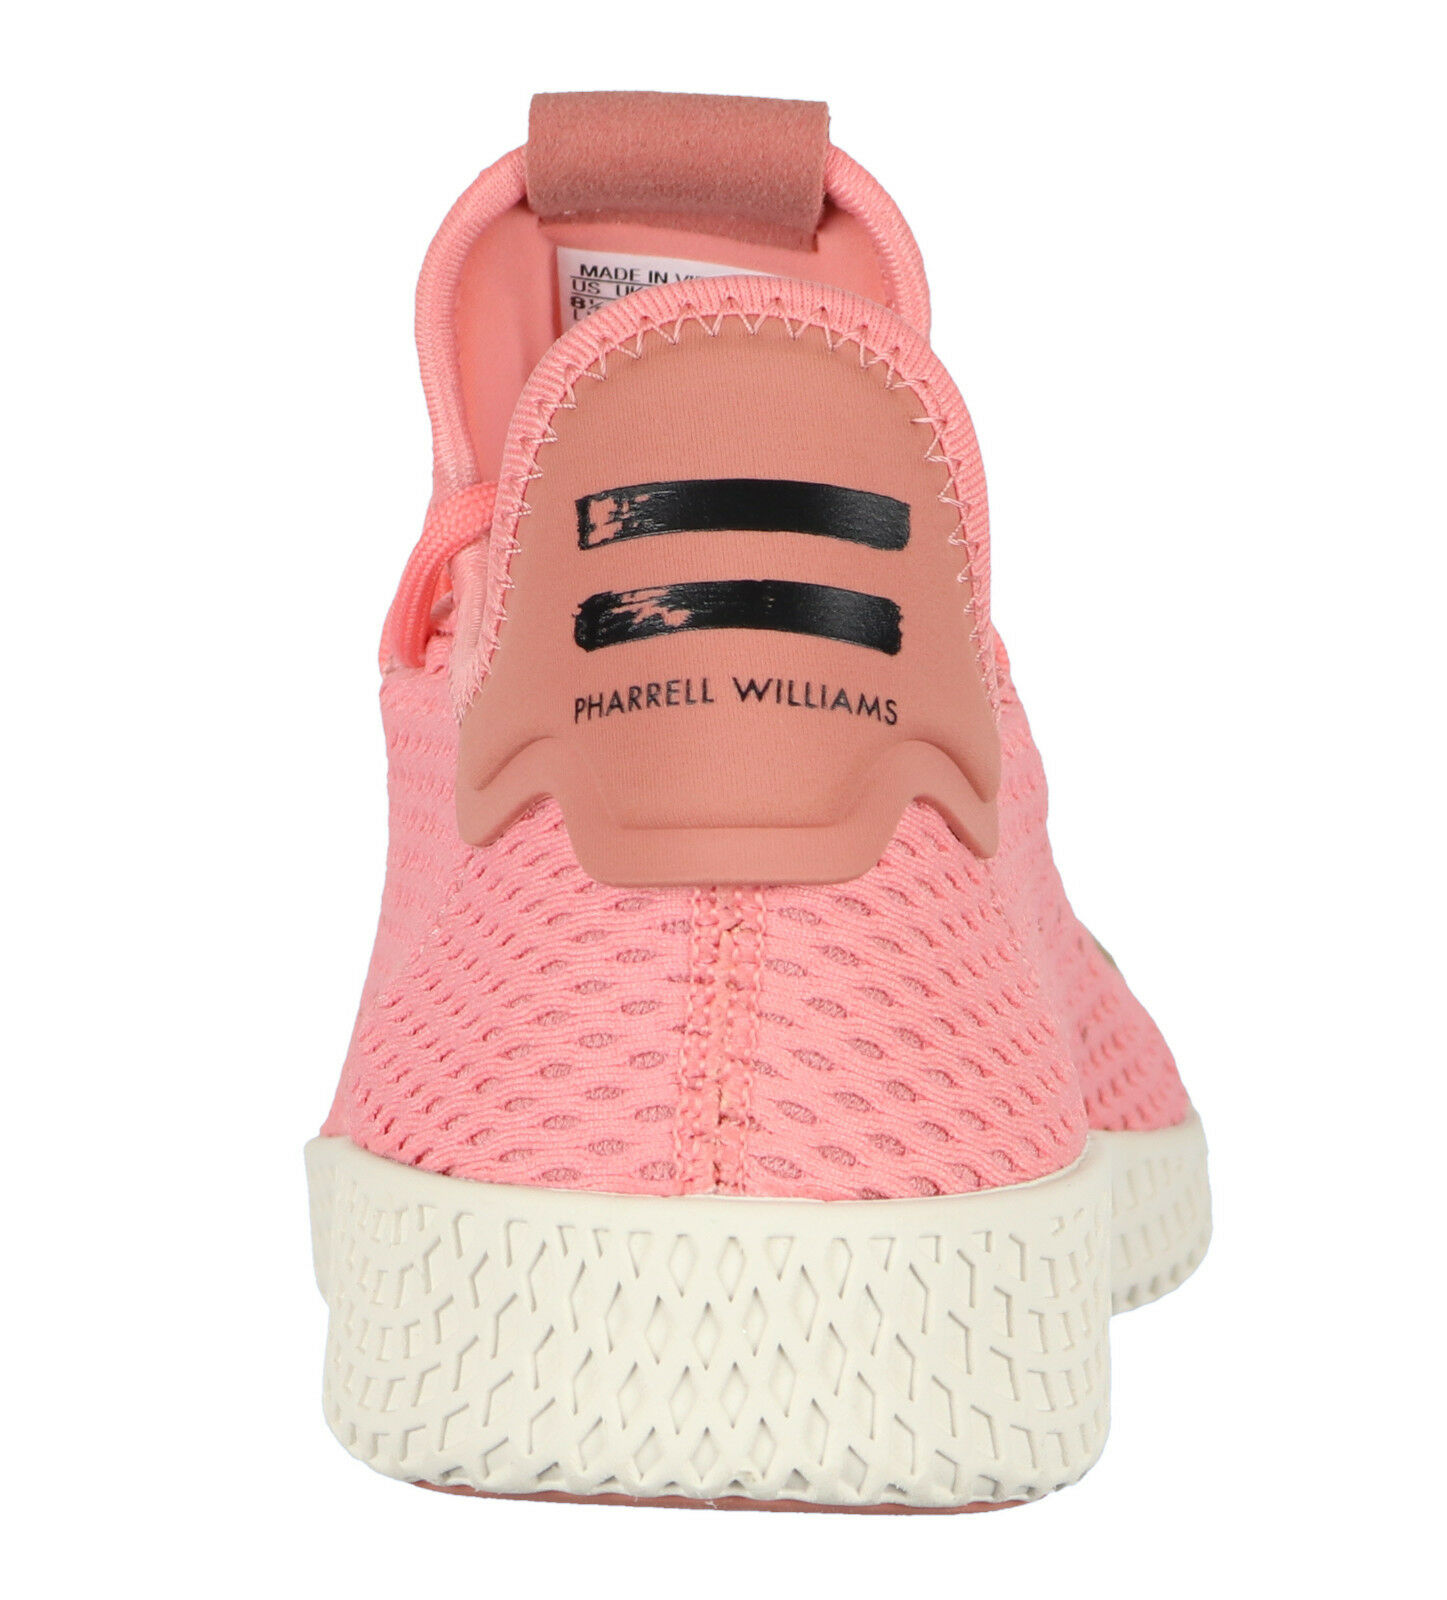 Adidas pharrell williams tennis hu hu hu casual schuhen sz 9,5 taktile rose pink cream 3e4008